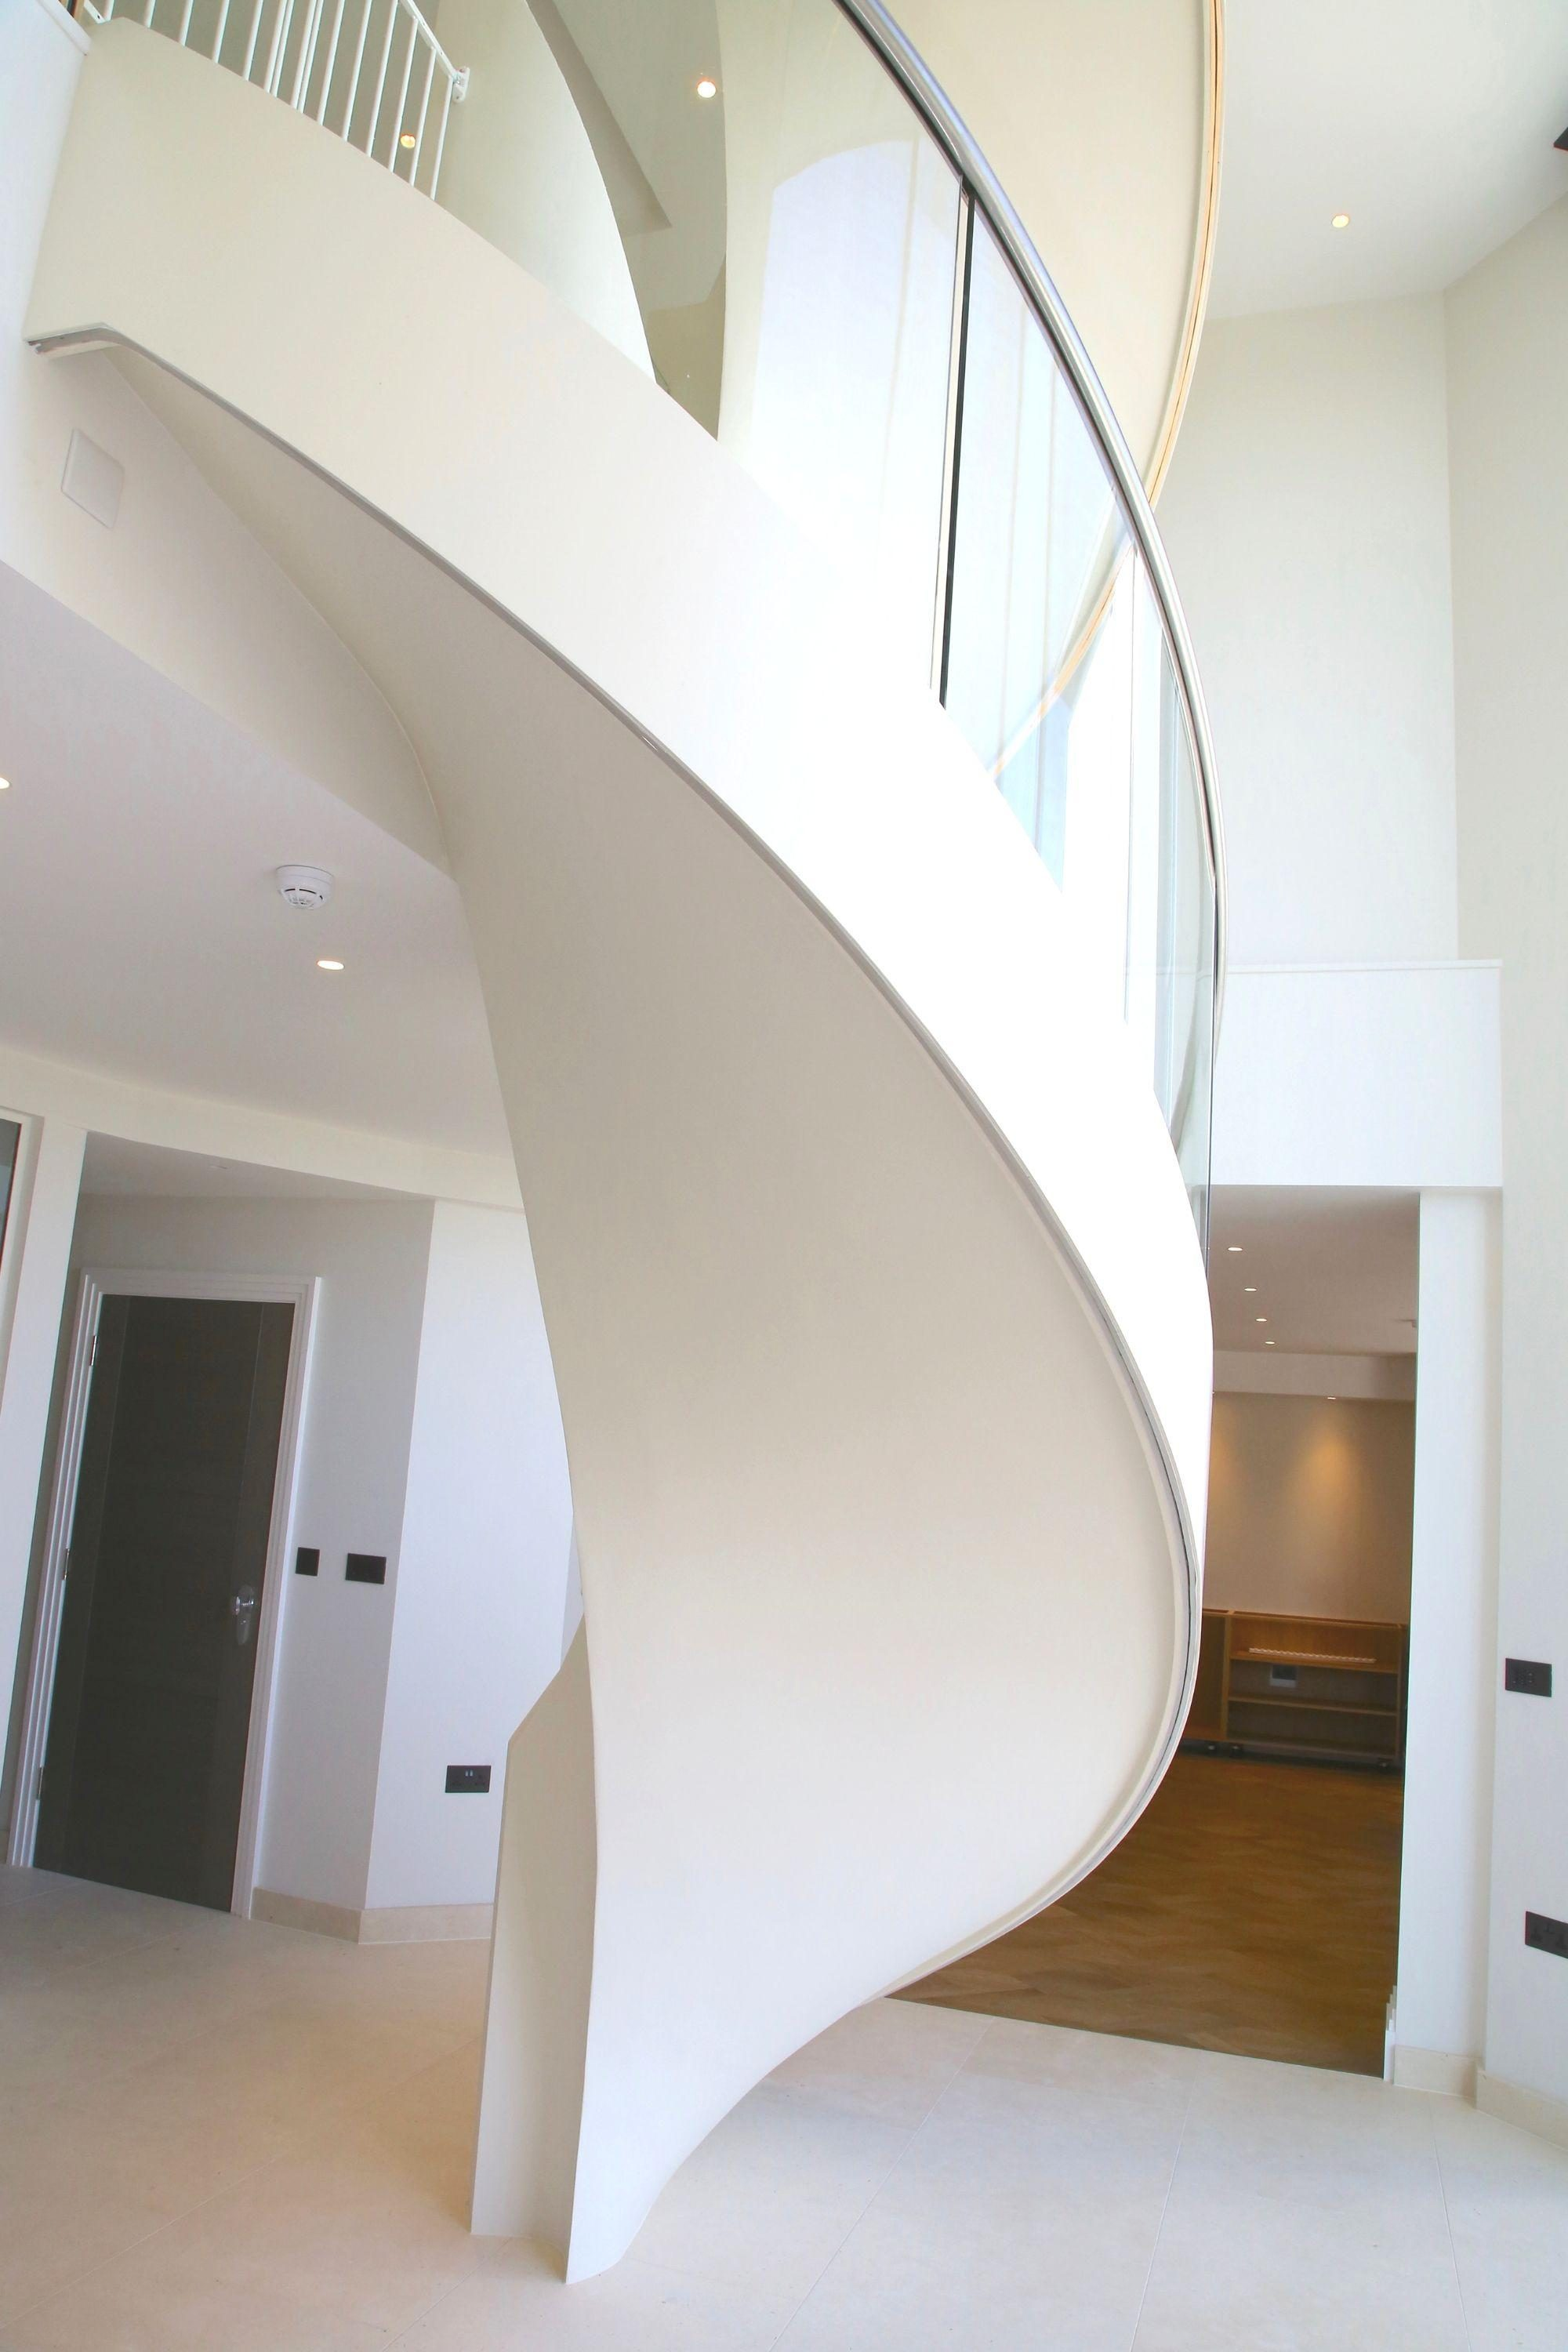 Underside of Curved Staircase